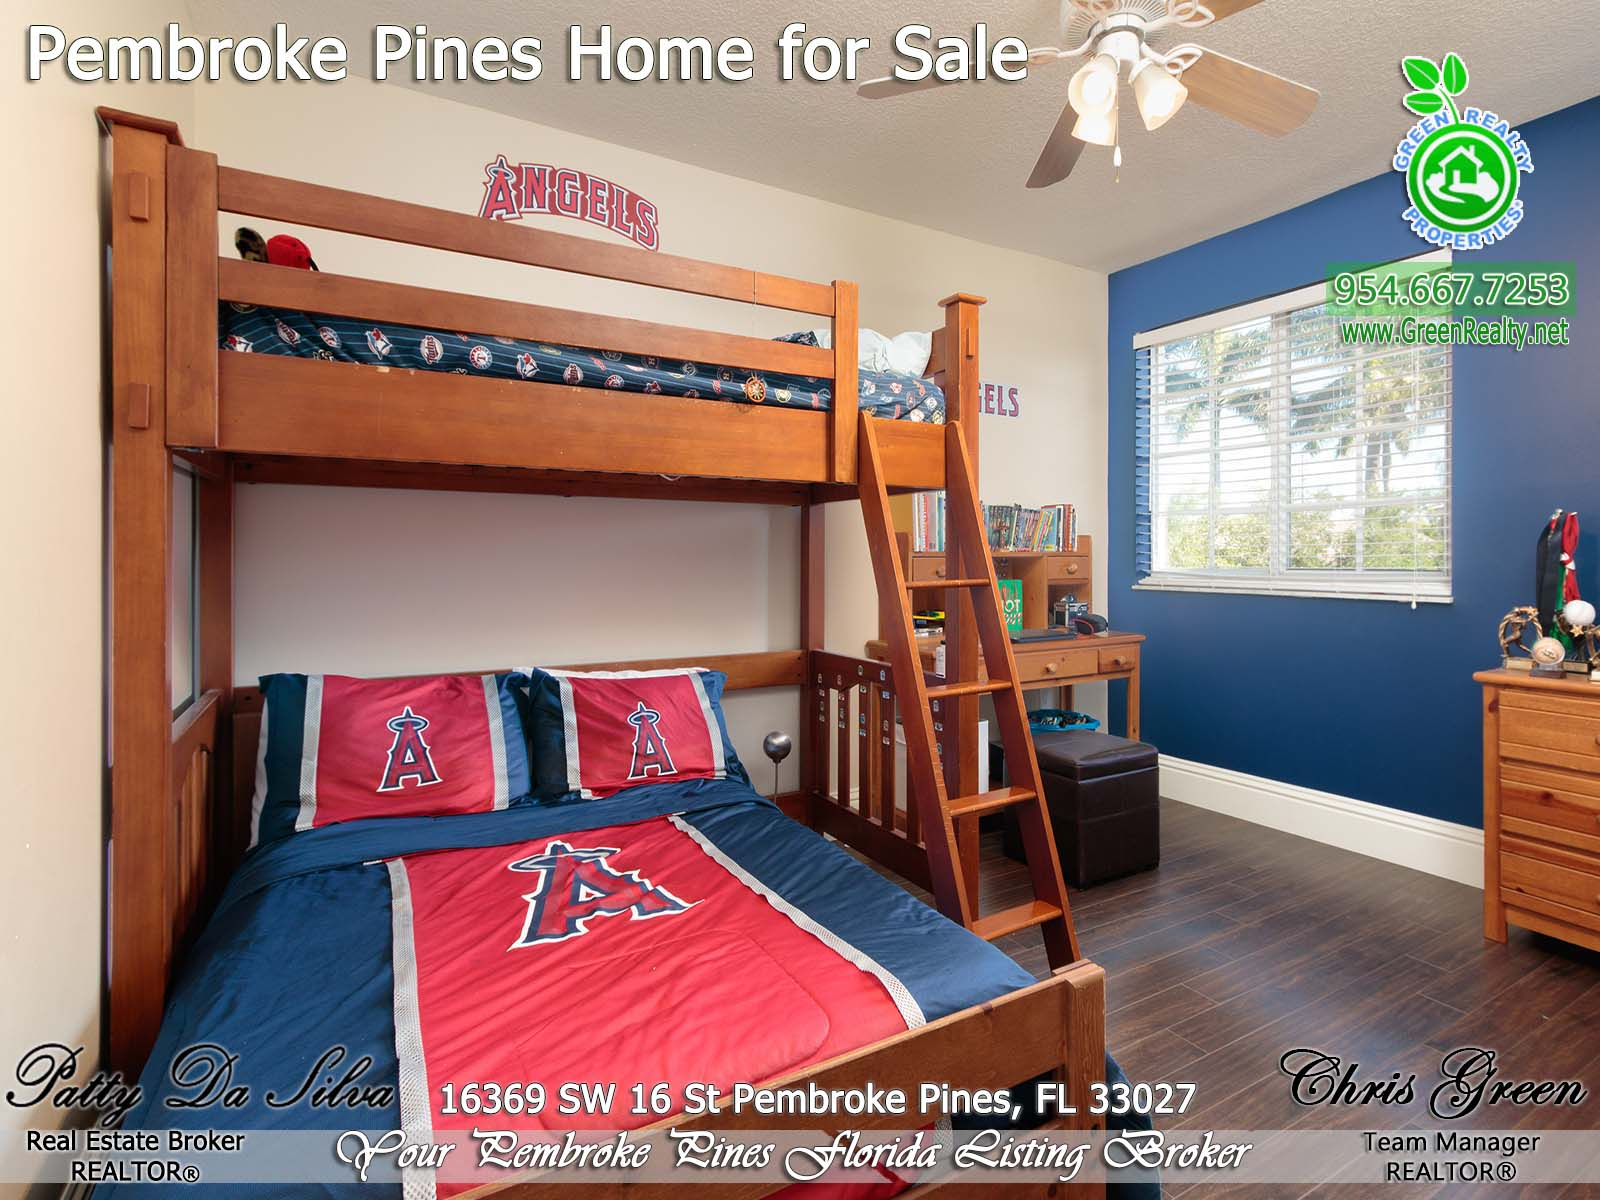 16 Pembroke Pines Realtor Broker Patty Da Silva south florida listing (17)